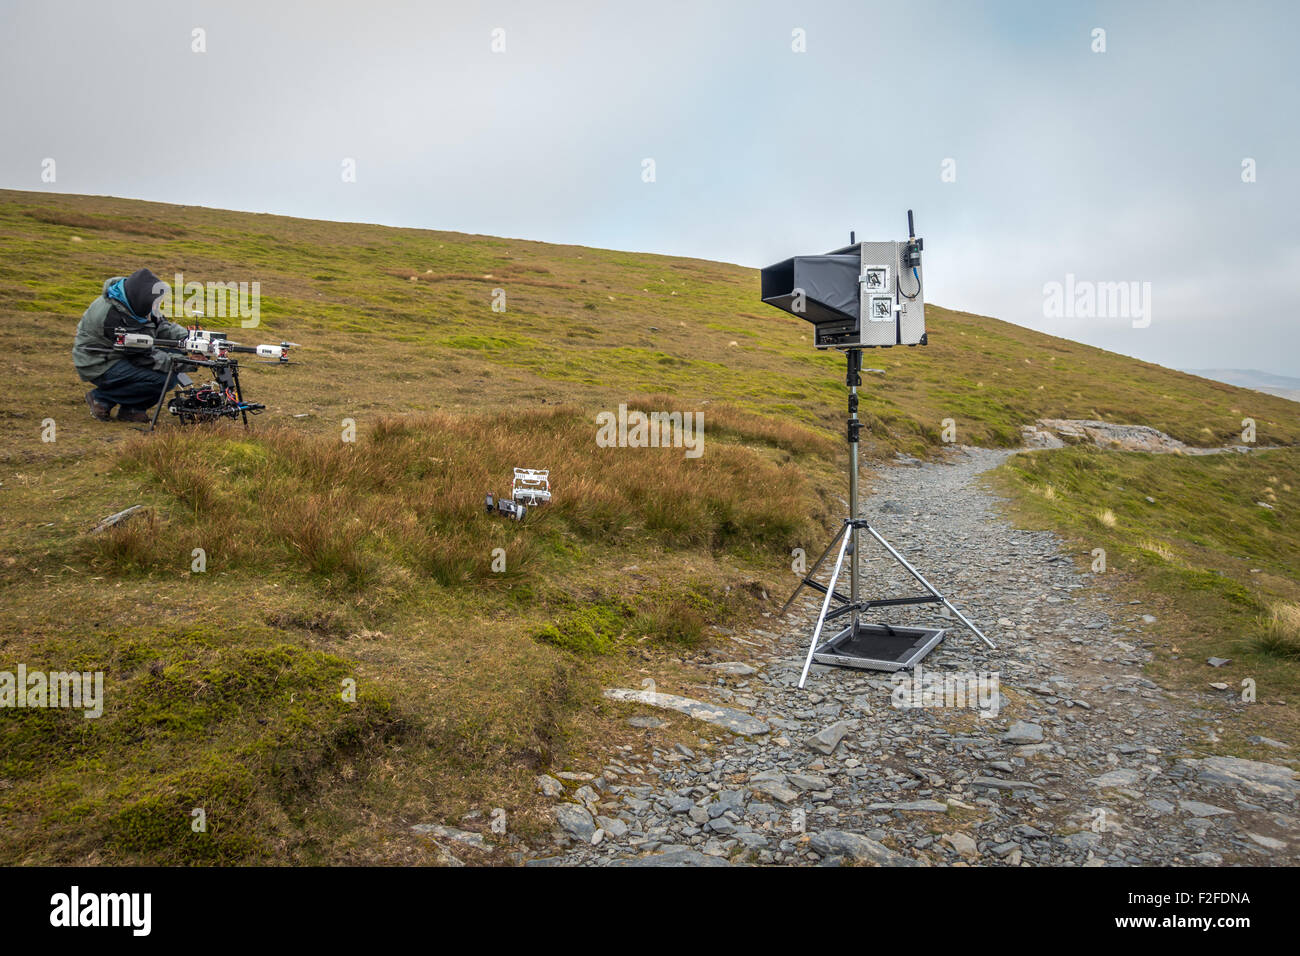 Film crew preparing a large expensive filming drone on the top of a mountain in the Lake District (Blencathra) - Stock Image